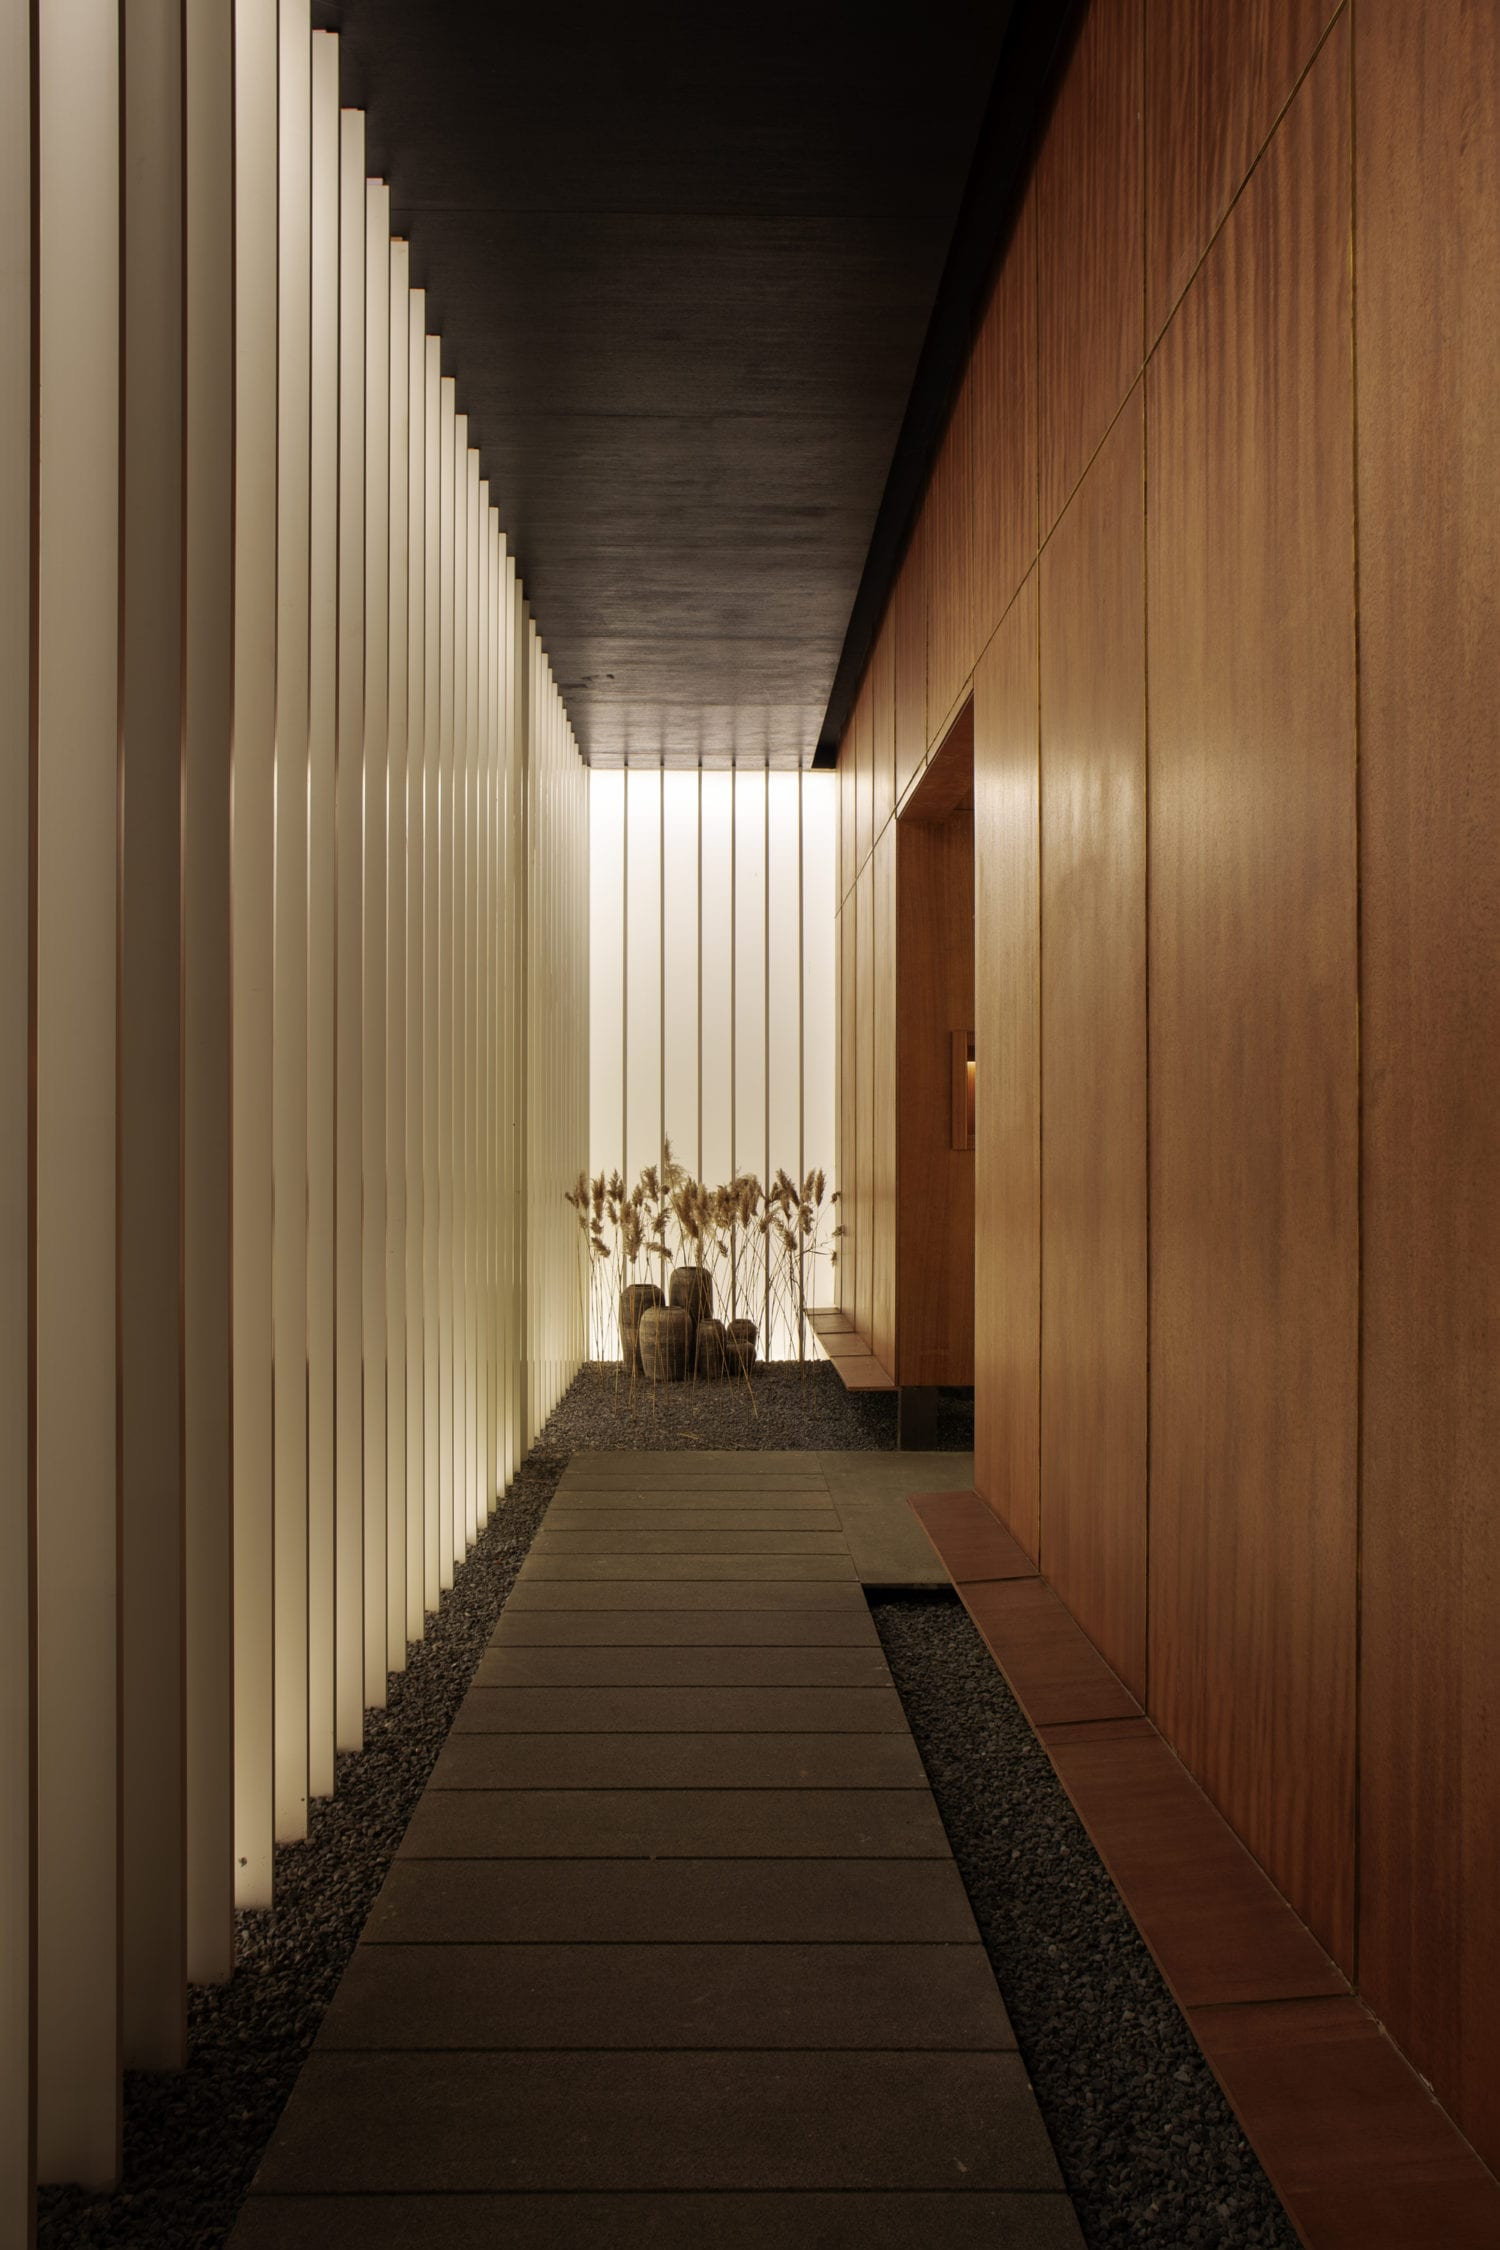 Meditation Hall In Huanghua China By Hil Architects Yellowtrace 03